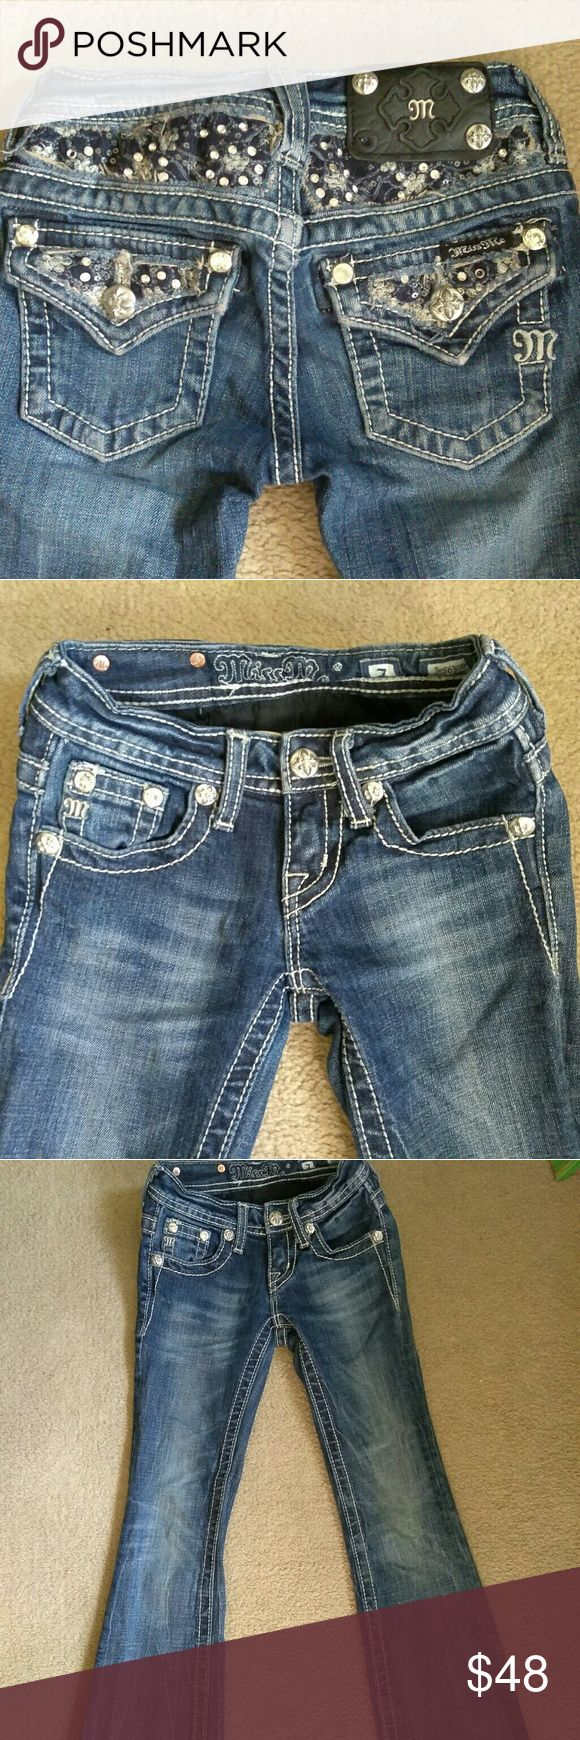 GIRLS MISS ME JEANS SIZE  7 Great condition and she will love these!!!! Miss Me Bottoms Jeans